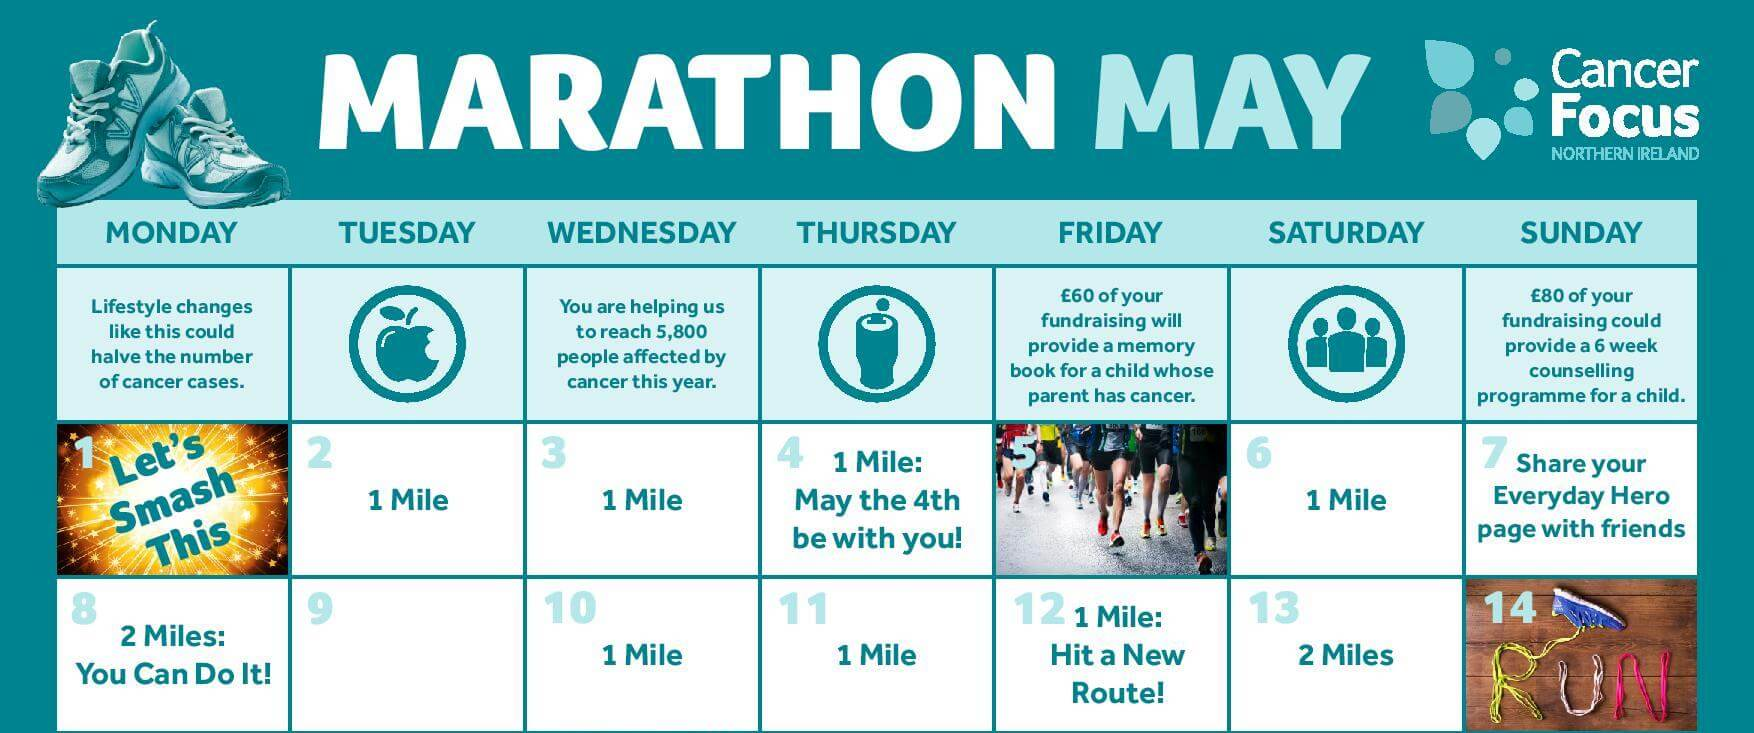 marathon-may-calendar_2017-page-001-2-crop